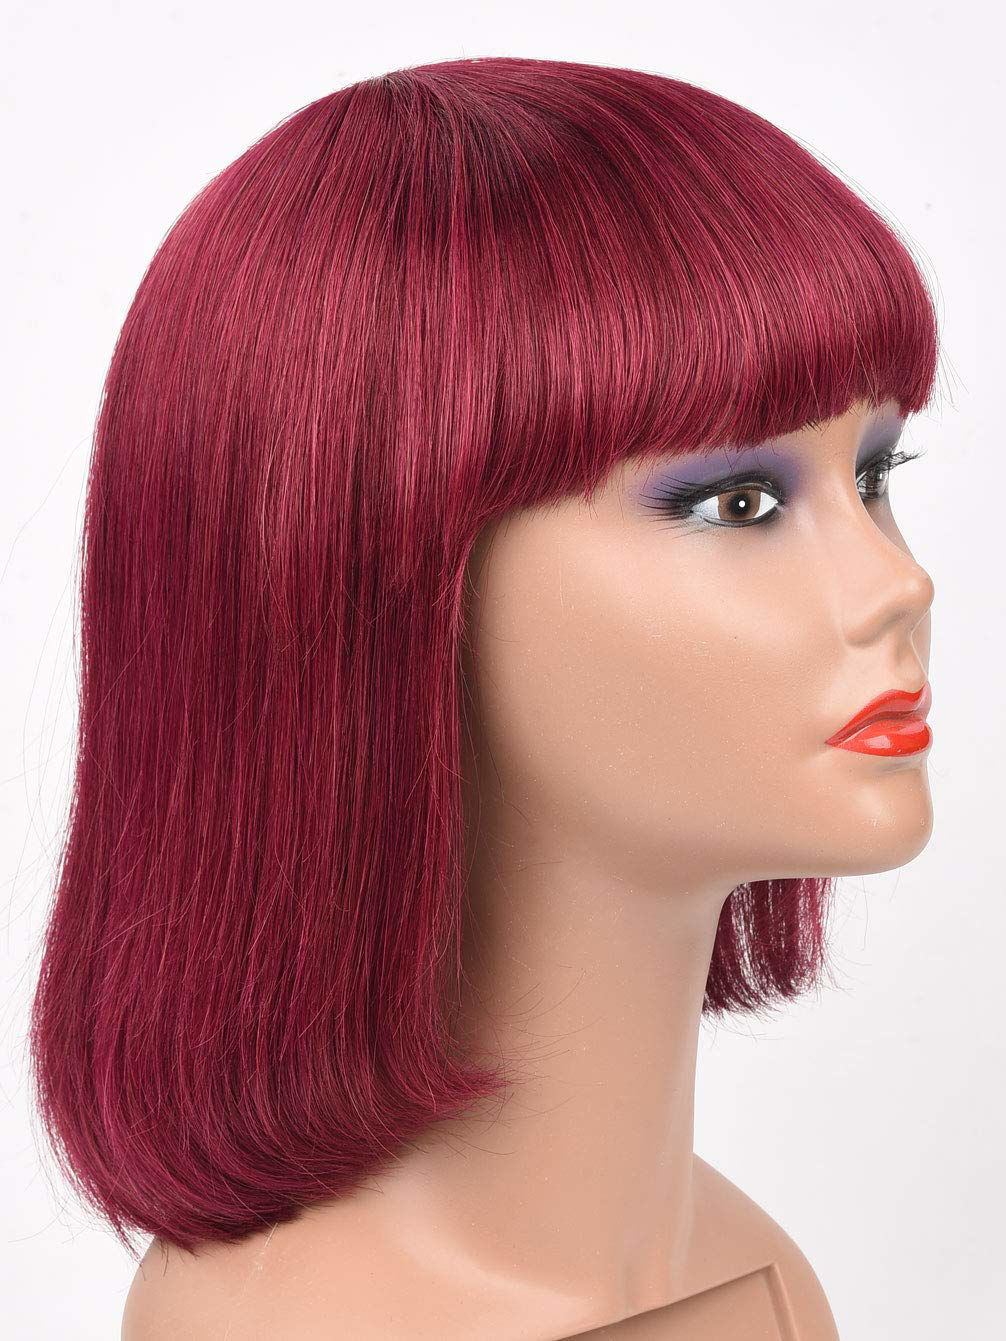 Wine Red Bob Wig with Bangs Human Hair Machine Made None Lace Front Wigs 99j wigs